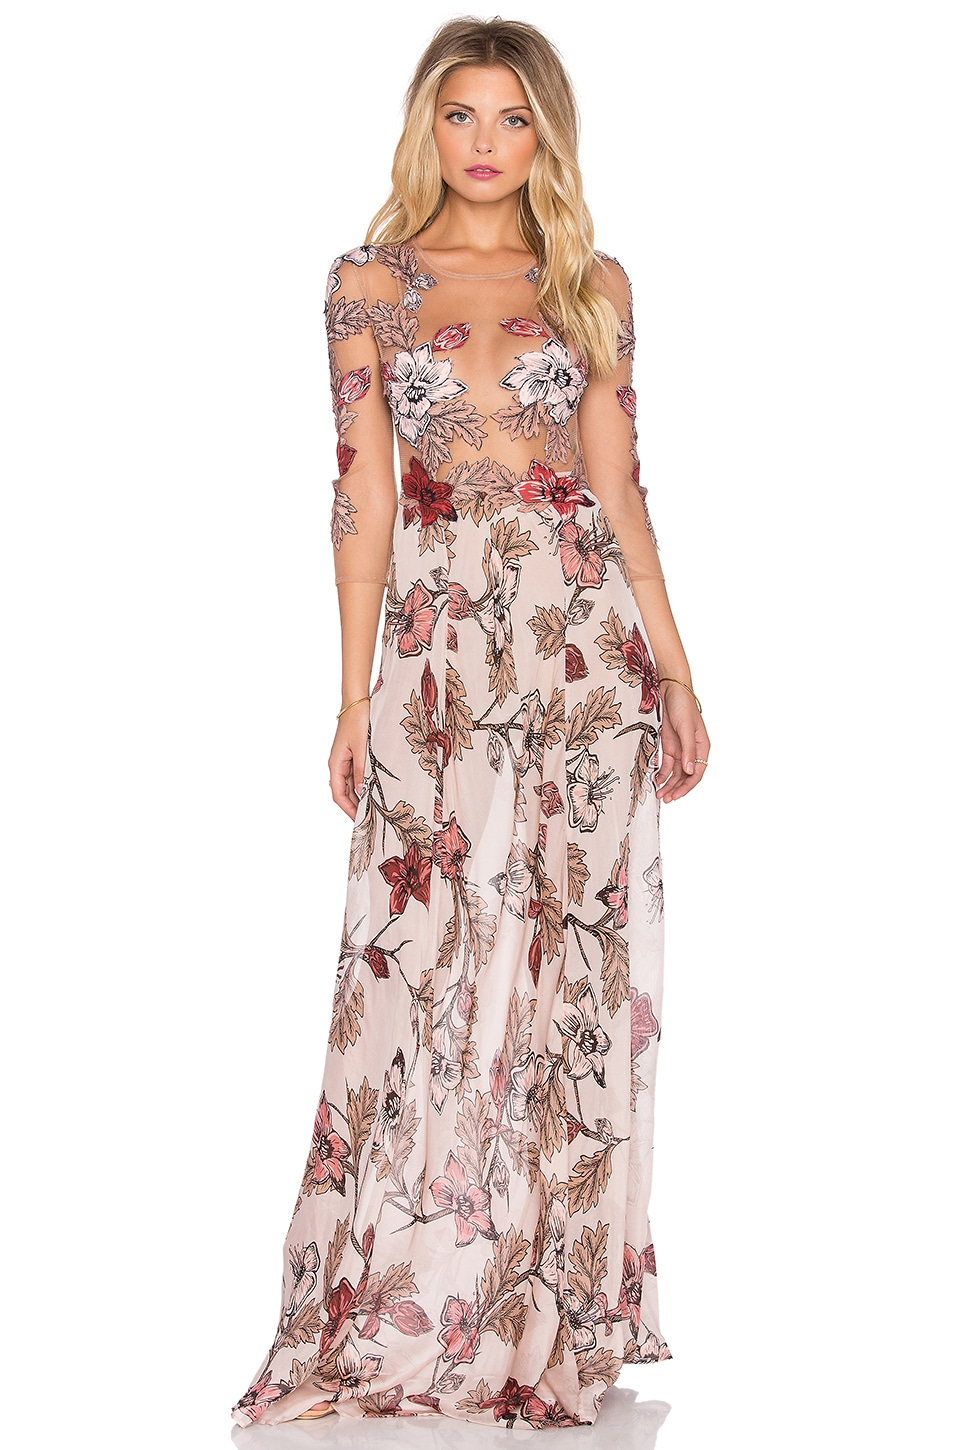 For Love Lemons Sierra Maxi Dress In Blush Floral Revolve Check out our ivory maxi dress selection for the very best in unique or custom, handmade pieces from our dresses shops. for love lemons